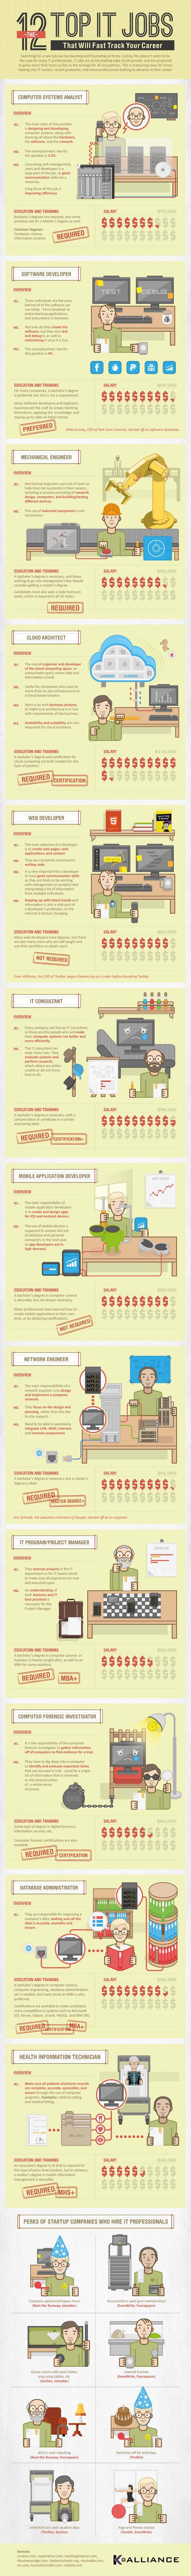 Top 12 IT Jobs that will Fast Track Your Career in 2014